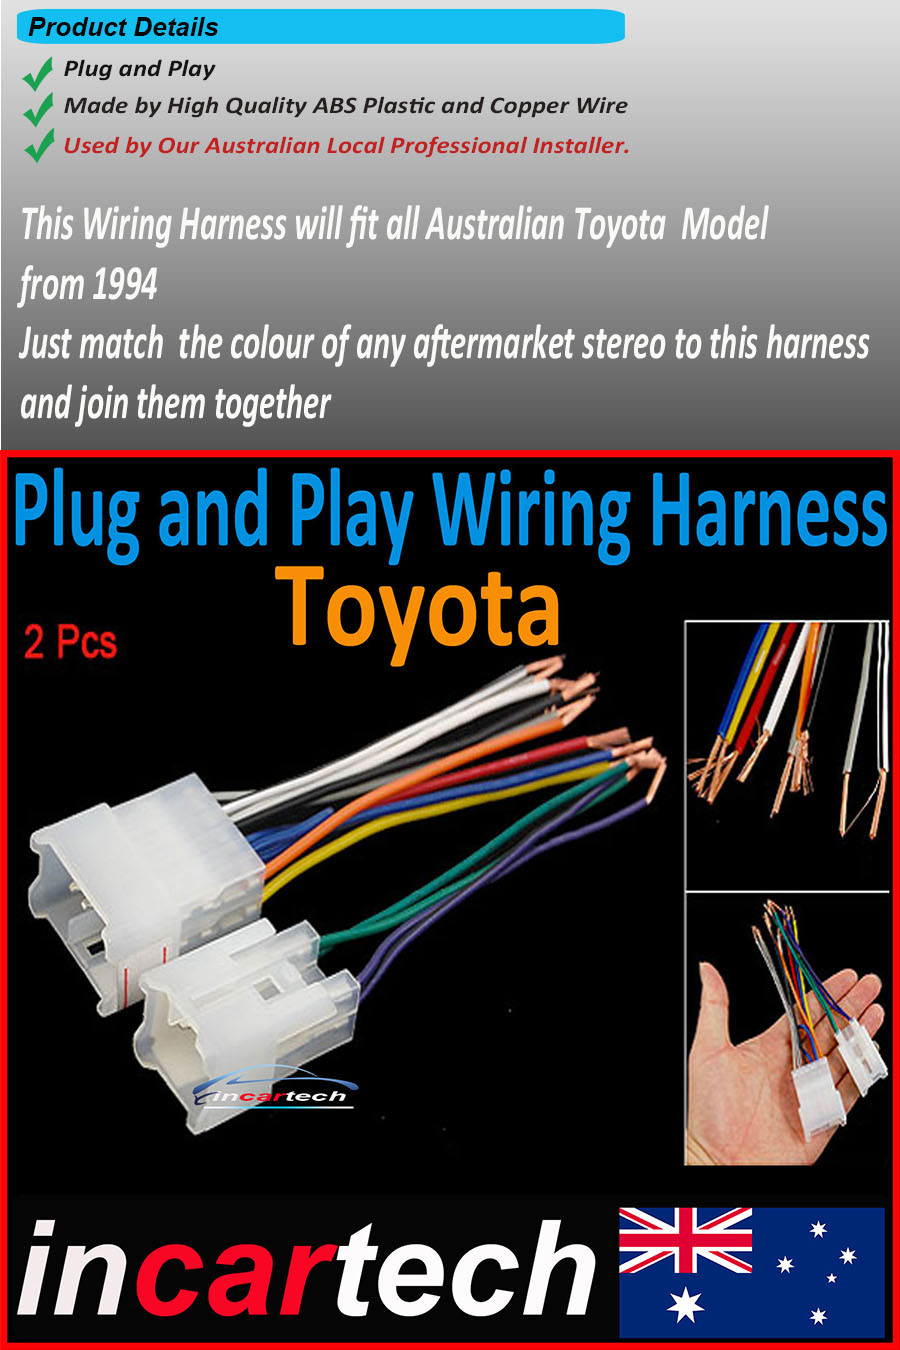 Toyota Wiring Harness Oem Factory Radio Plug Lead Loom Wire Camry Sony On 22 Nov 16 At 002016 Aedst Seller Added The Following Information Dc Tracker